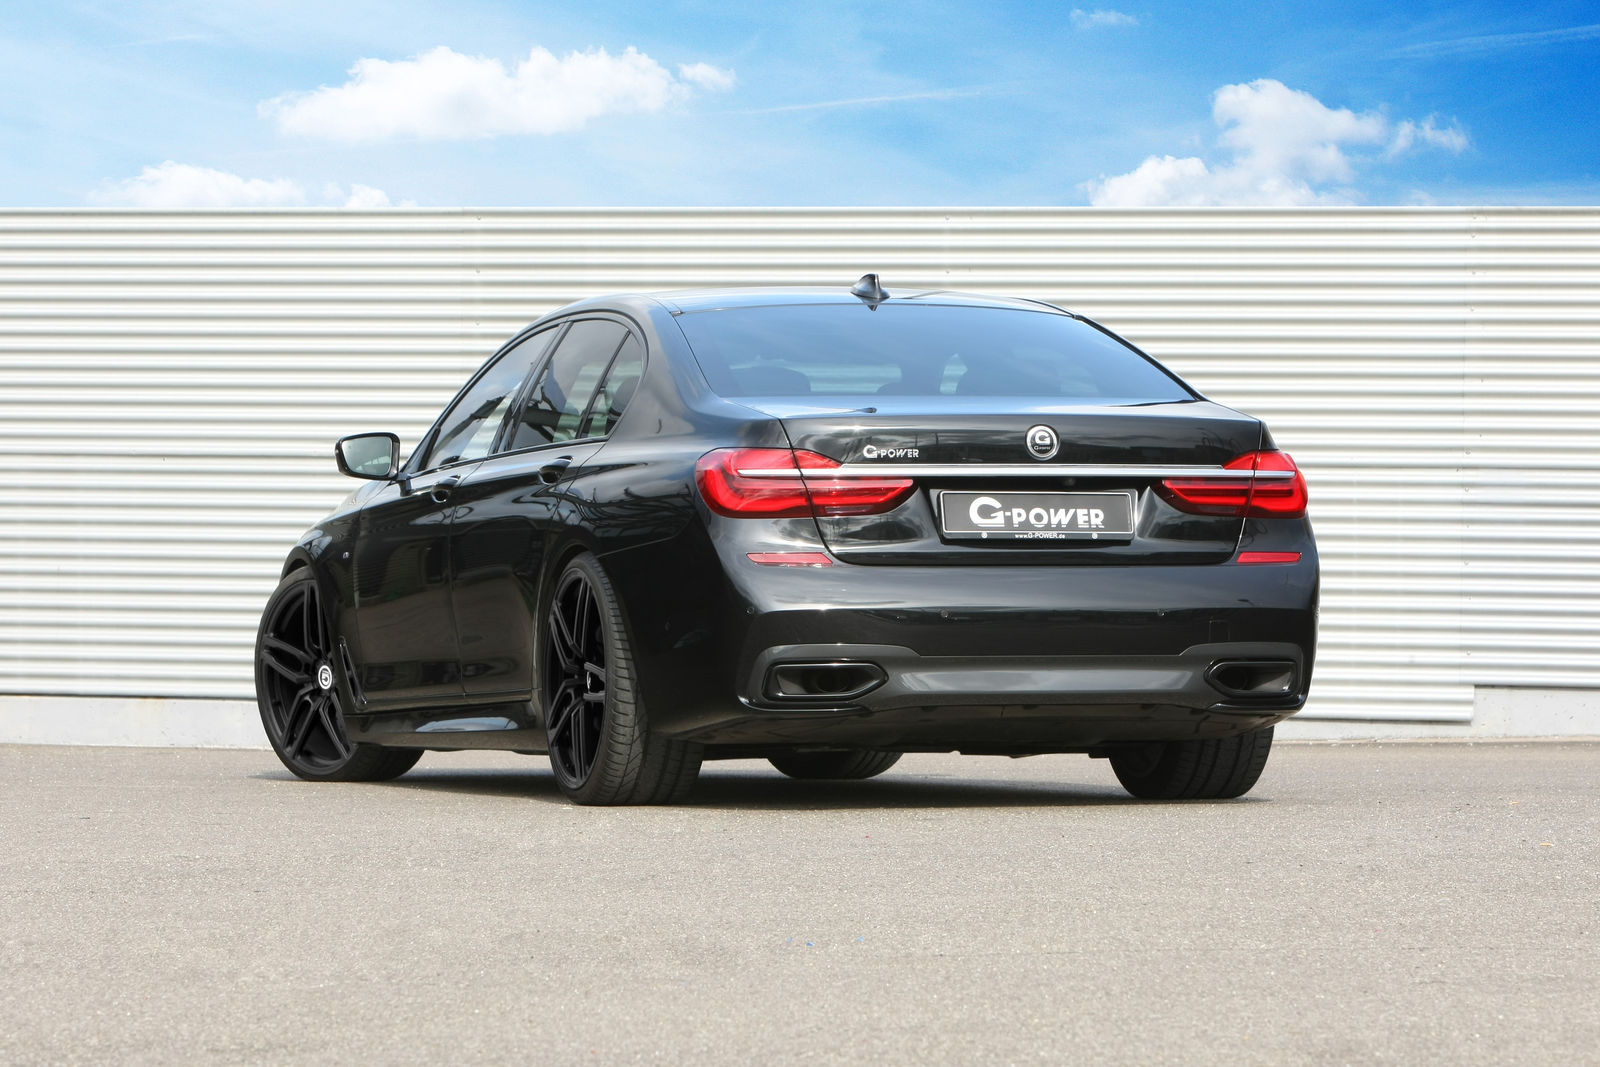 2017 Bmw 750d Xdrive Launched With 400 Hp Quad Turbo 3